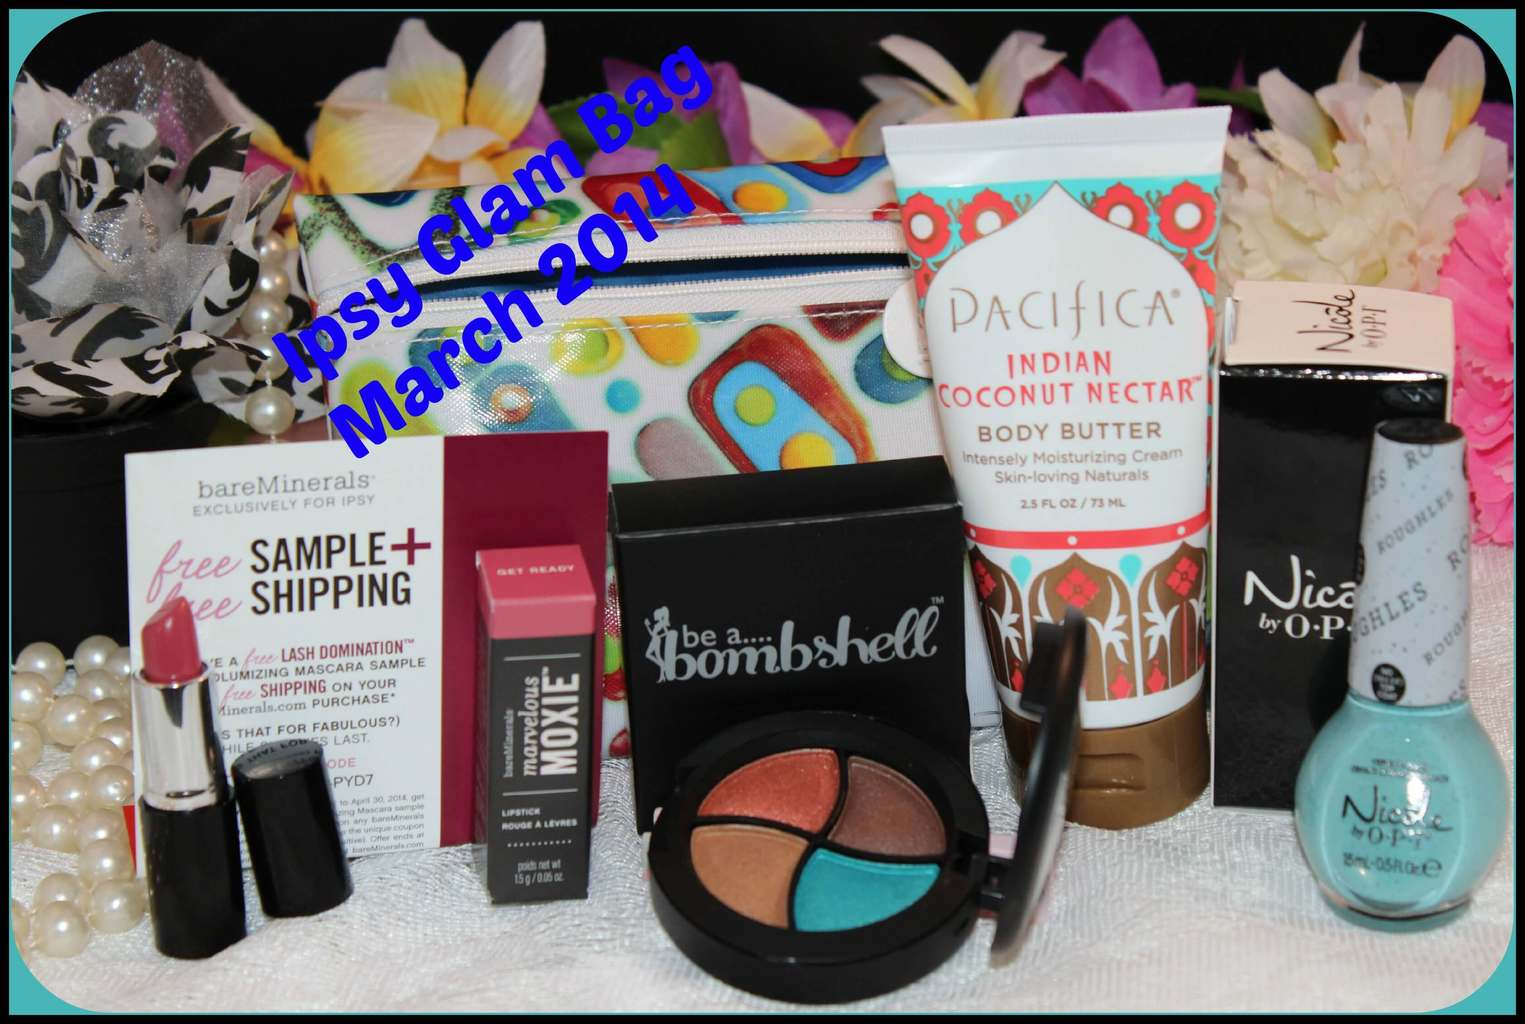 Ipsy March 2014 Glam Bag Reveal!  Beth, Beauty and More